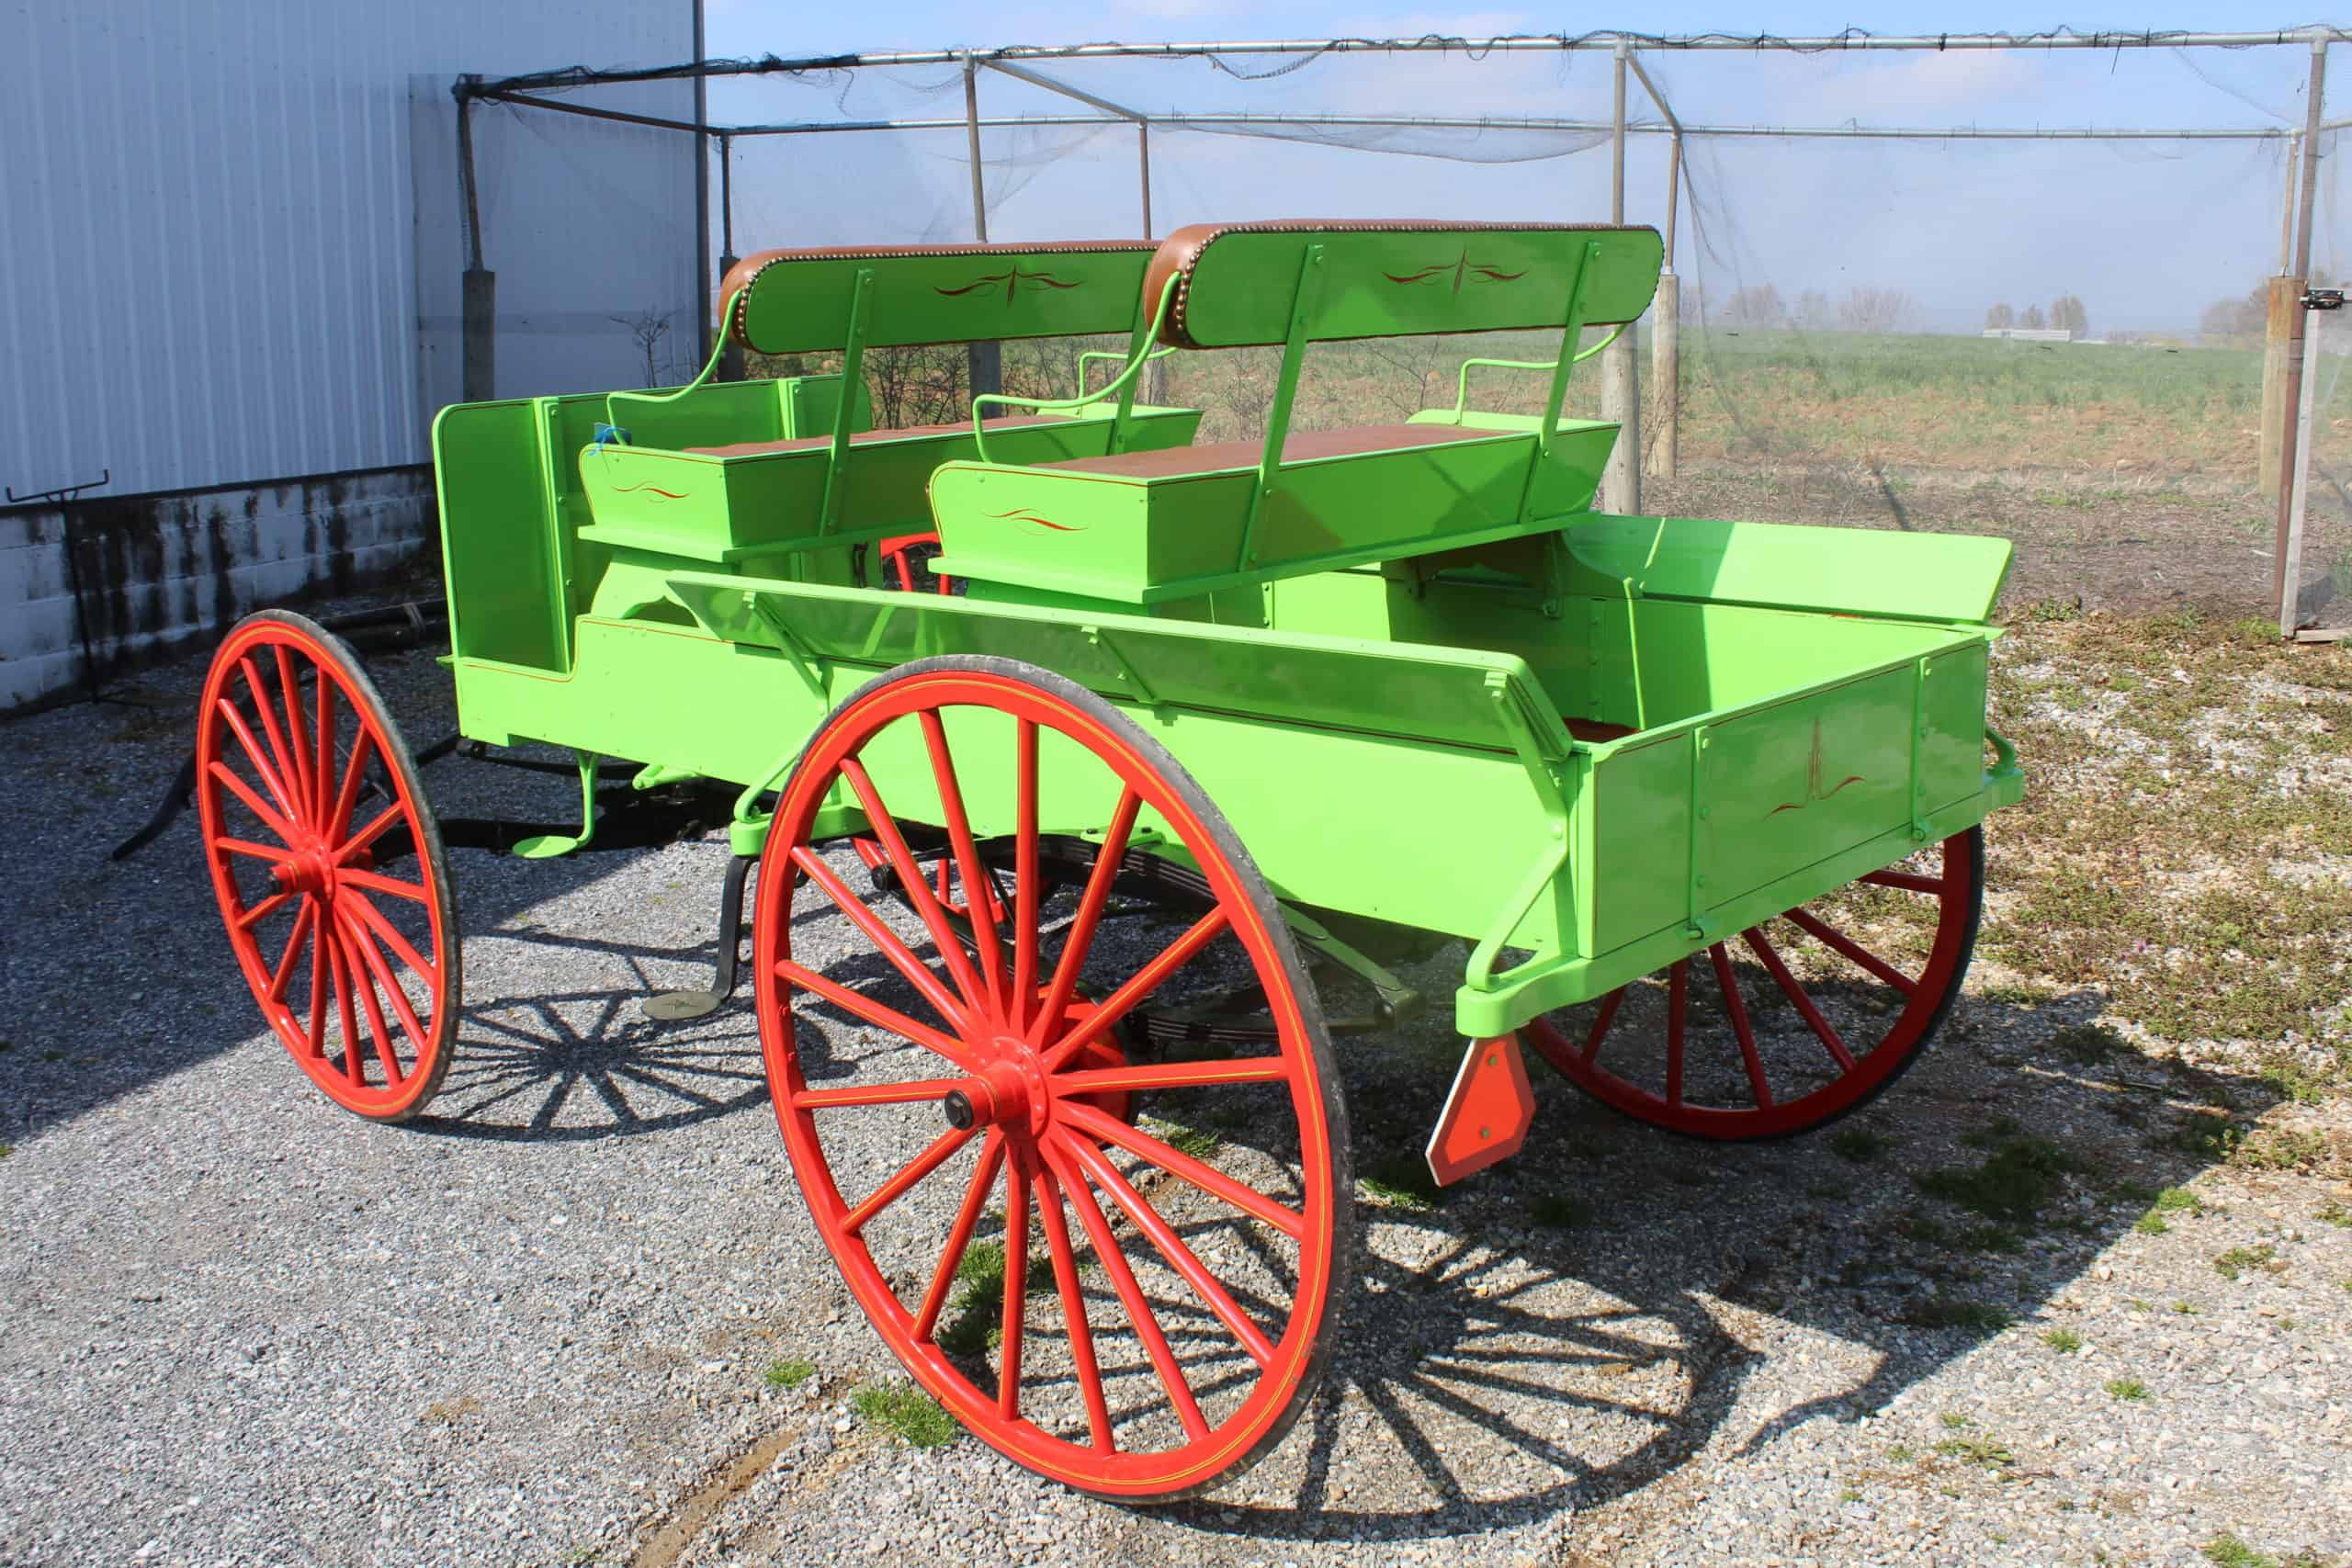 #572 2 Seat Spring Wagon, Like New Condition, Hydaulic brakes, Rubber on Wheels, Body Painted Green, Red Wheels, Black Gear, Red Seat Cushions $3,600.